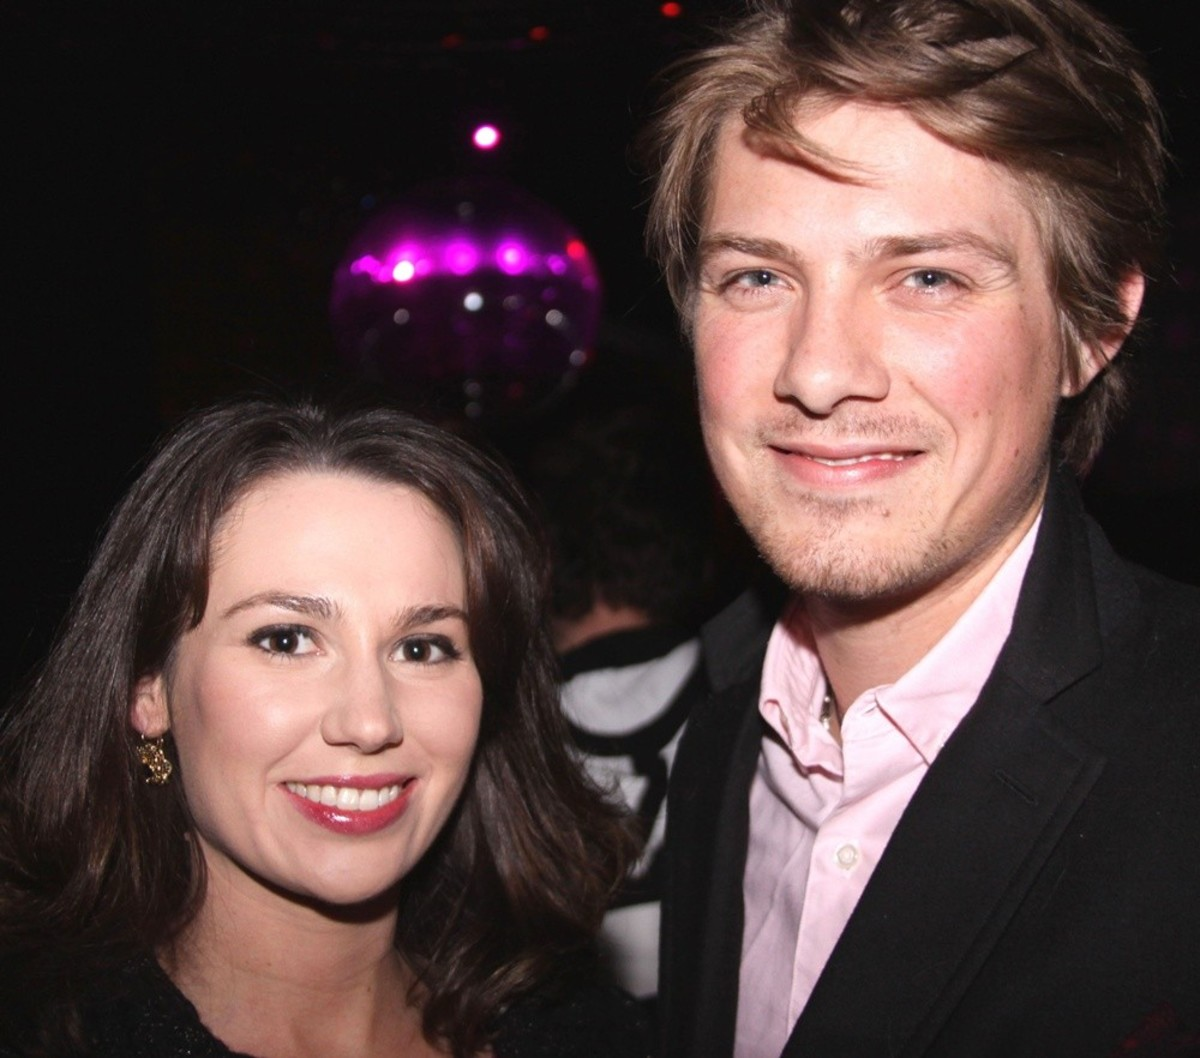 Young celebrity that is still married